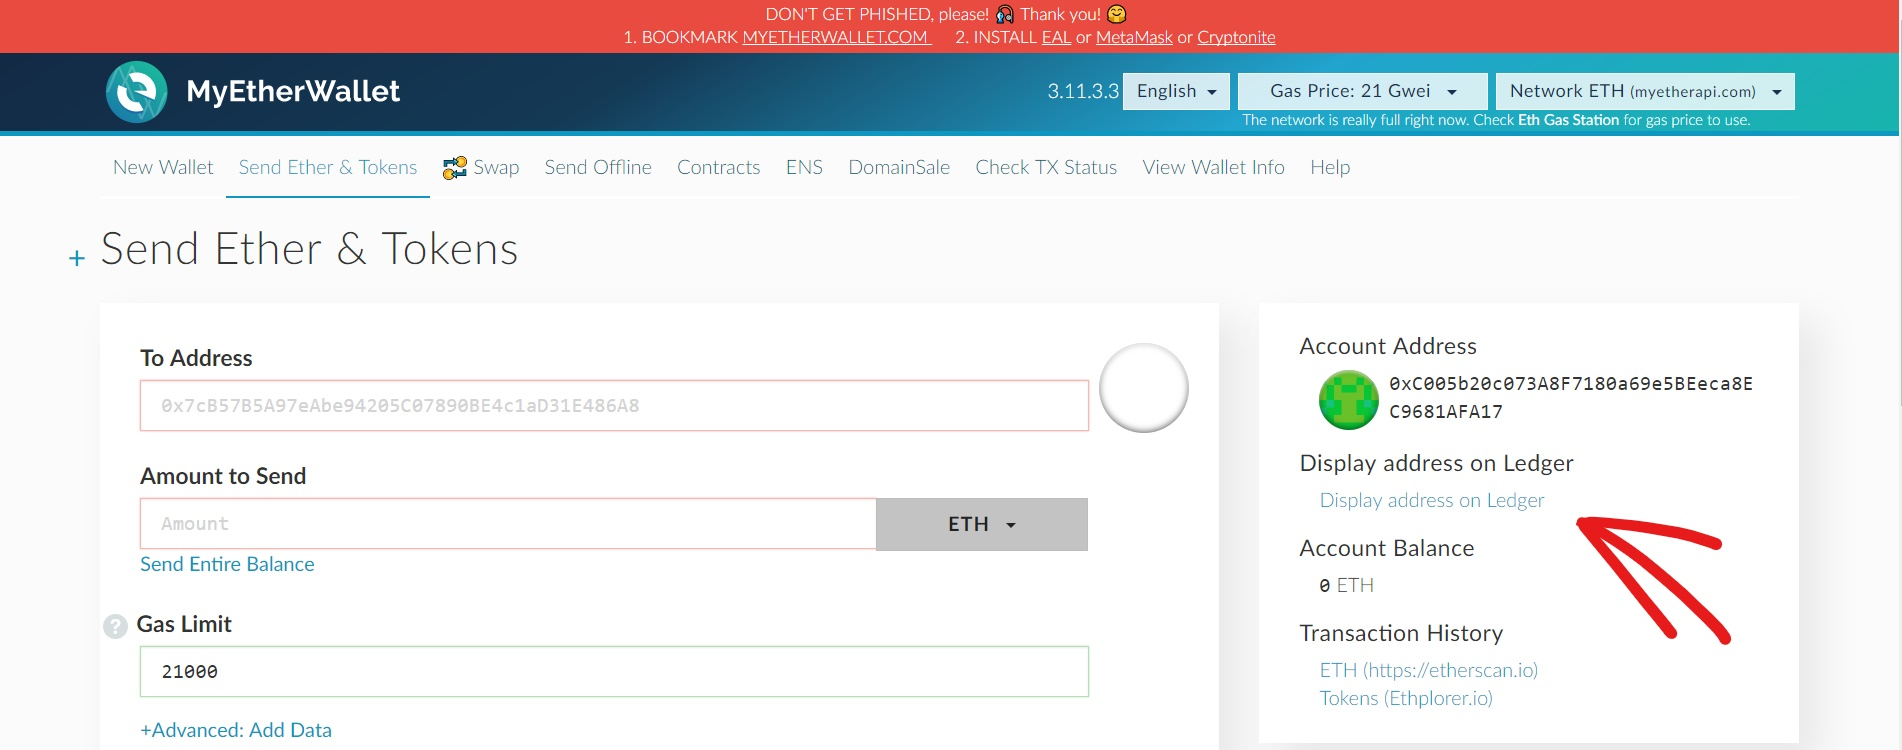 Link to check your Ethereum address from MyEtherWallet.com on your Ledger device screen. Use before receiving large amounts of ether or tokens.